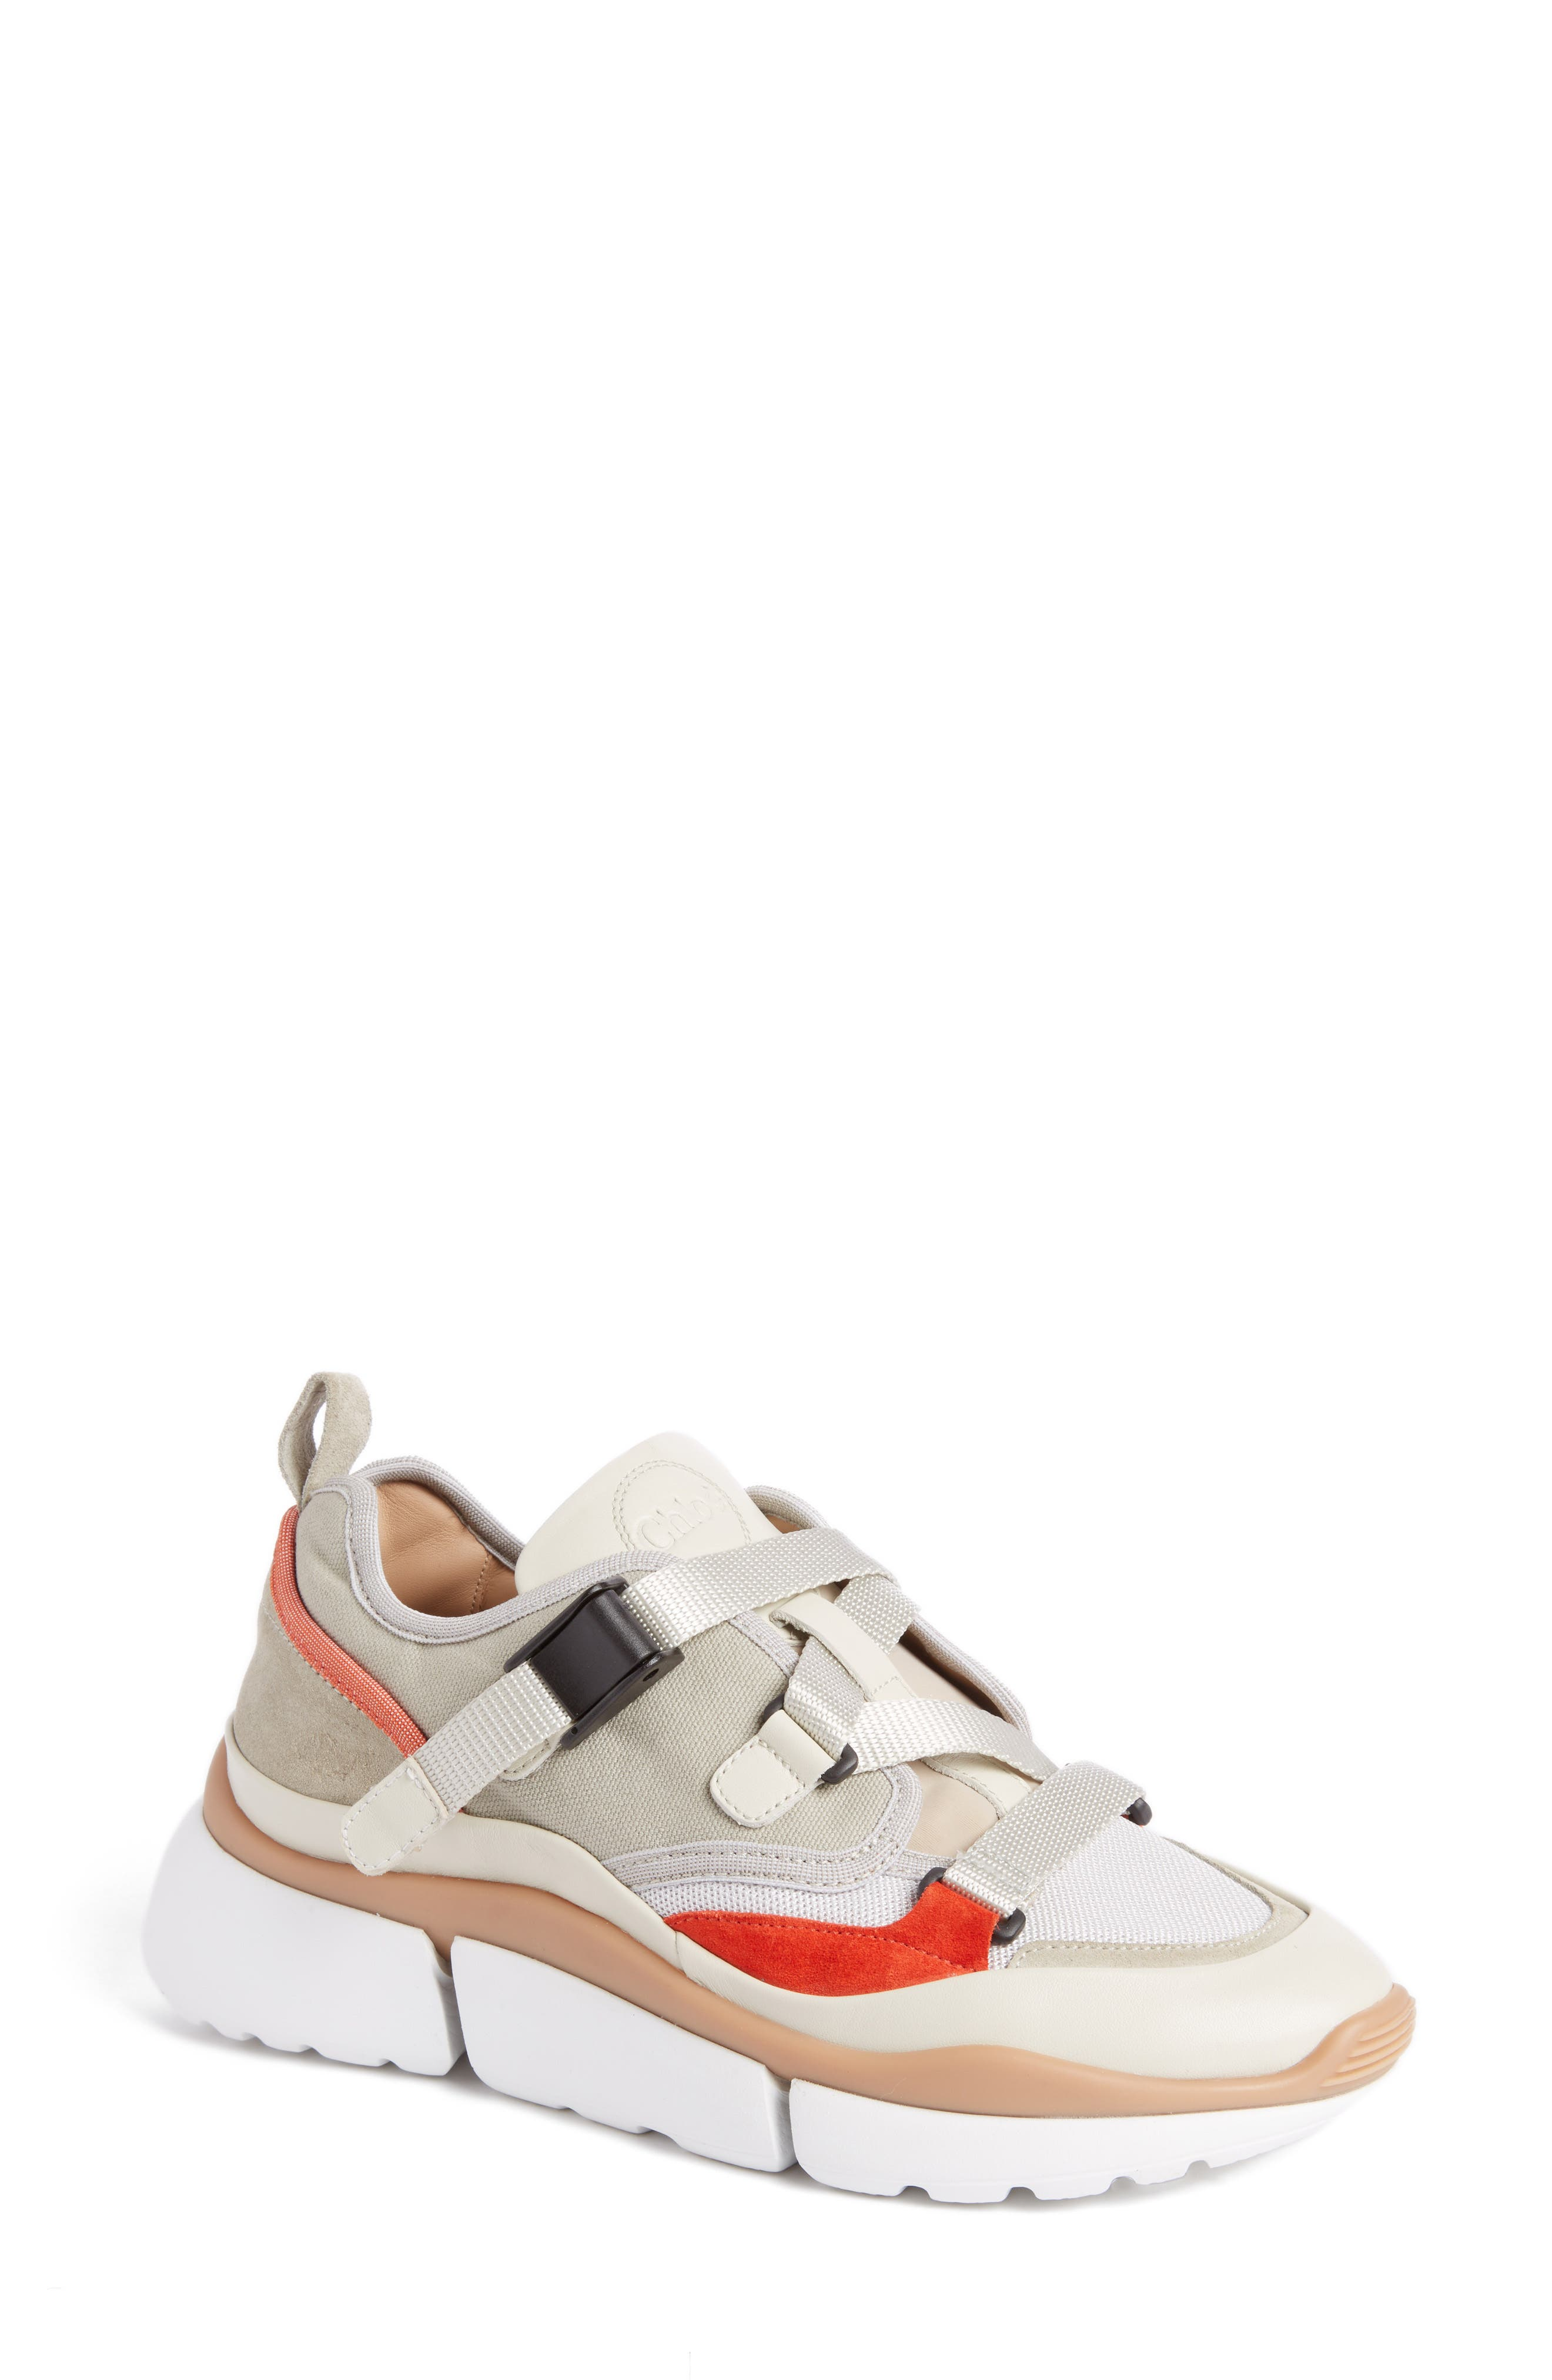 Sonnie Low Top Sneaker,                         Main,                         color, LIGHT EUCALYPTUS